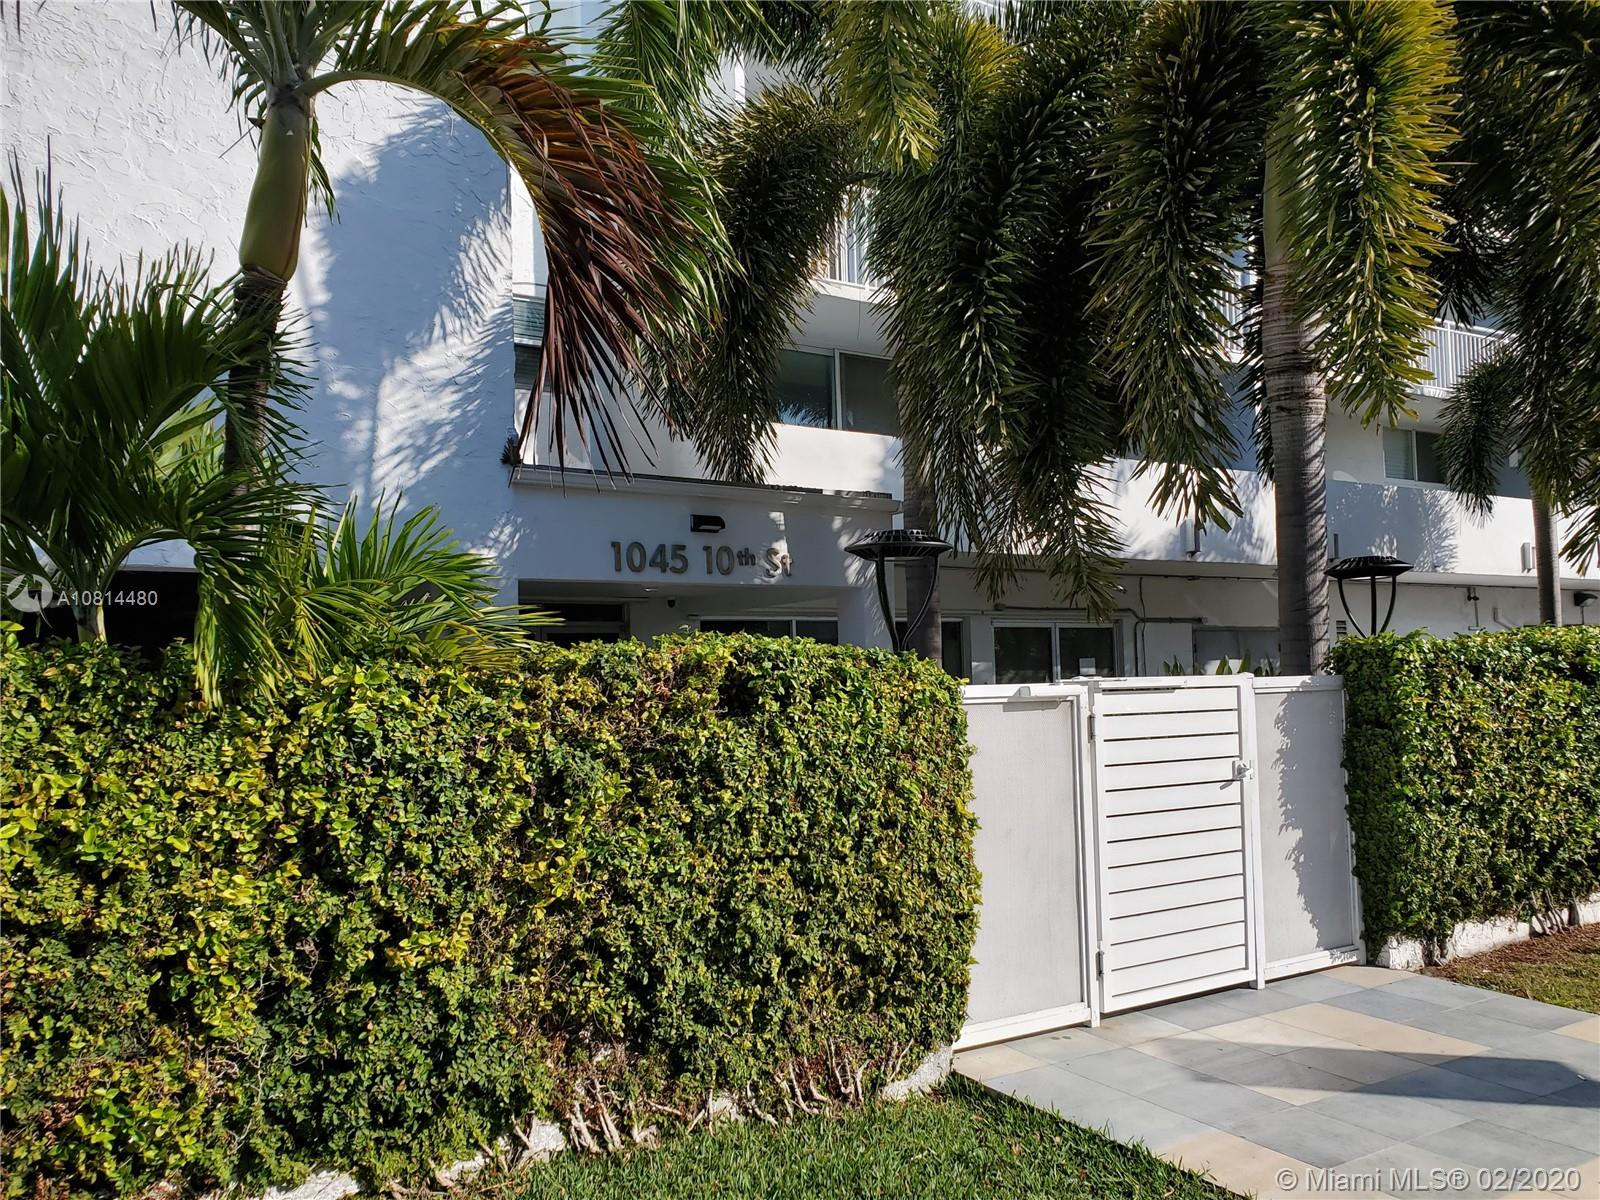 1045  10th St #405 For Sale A10814480, FL